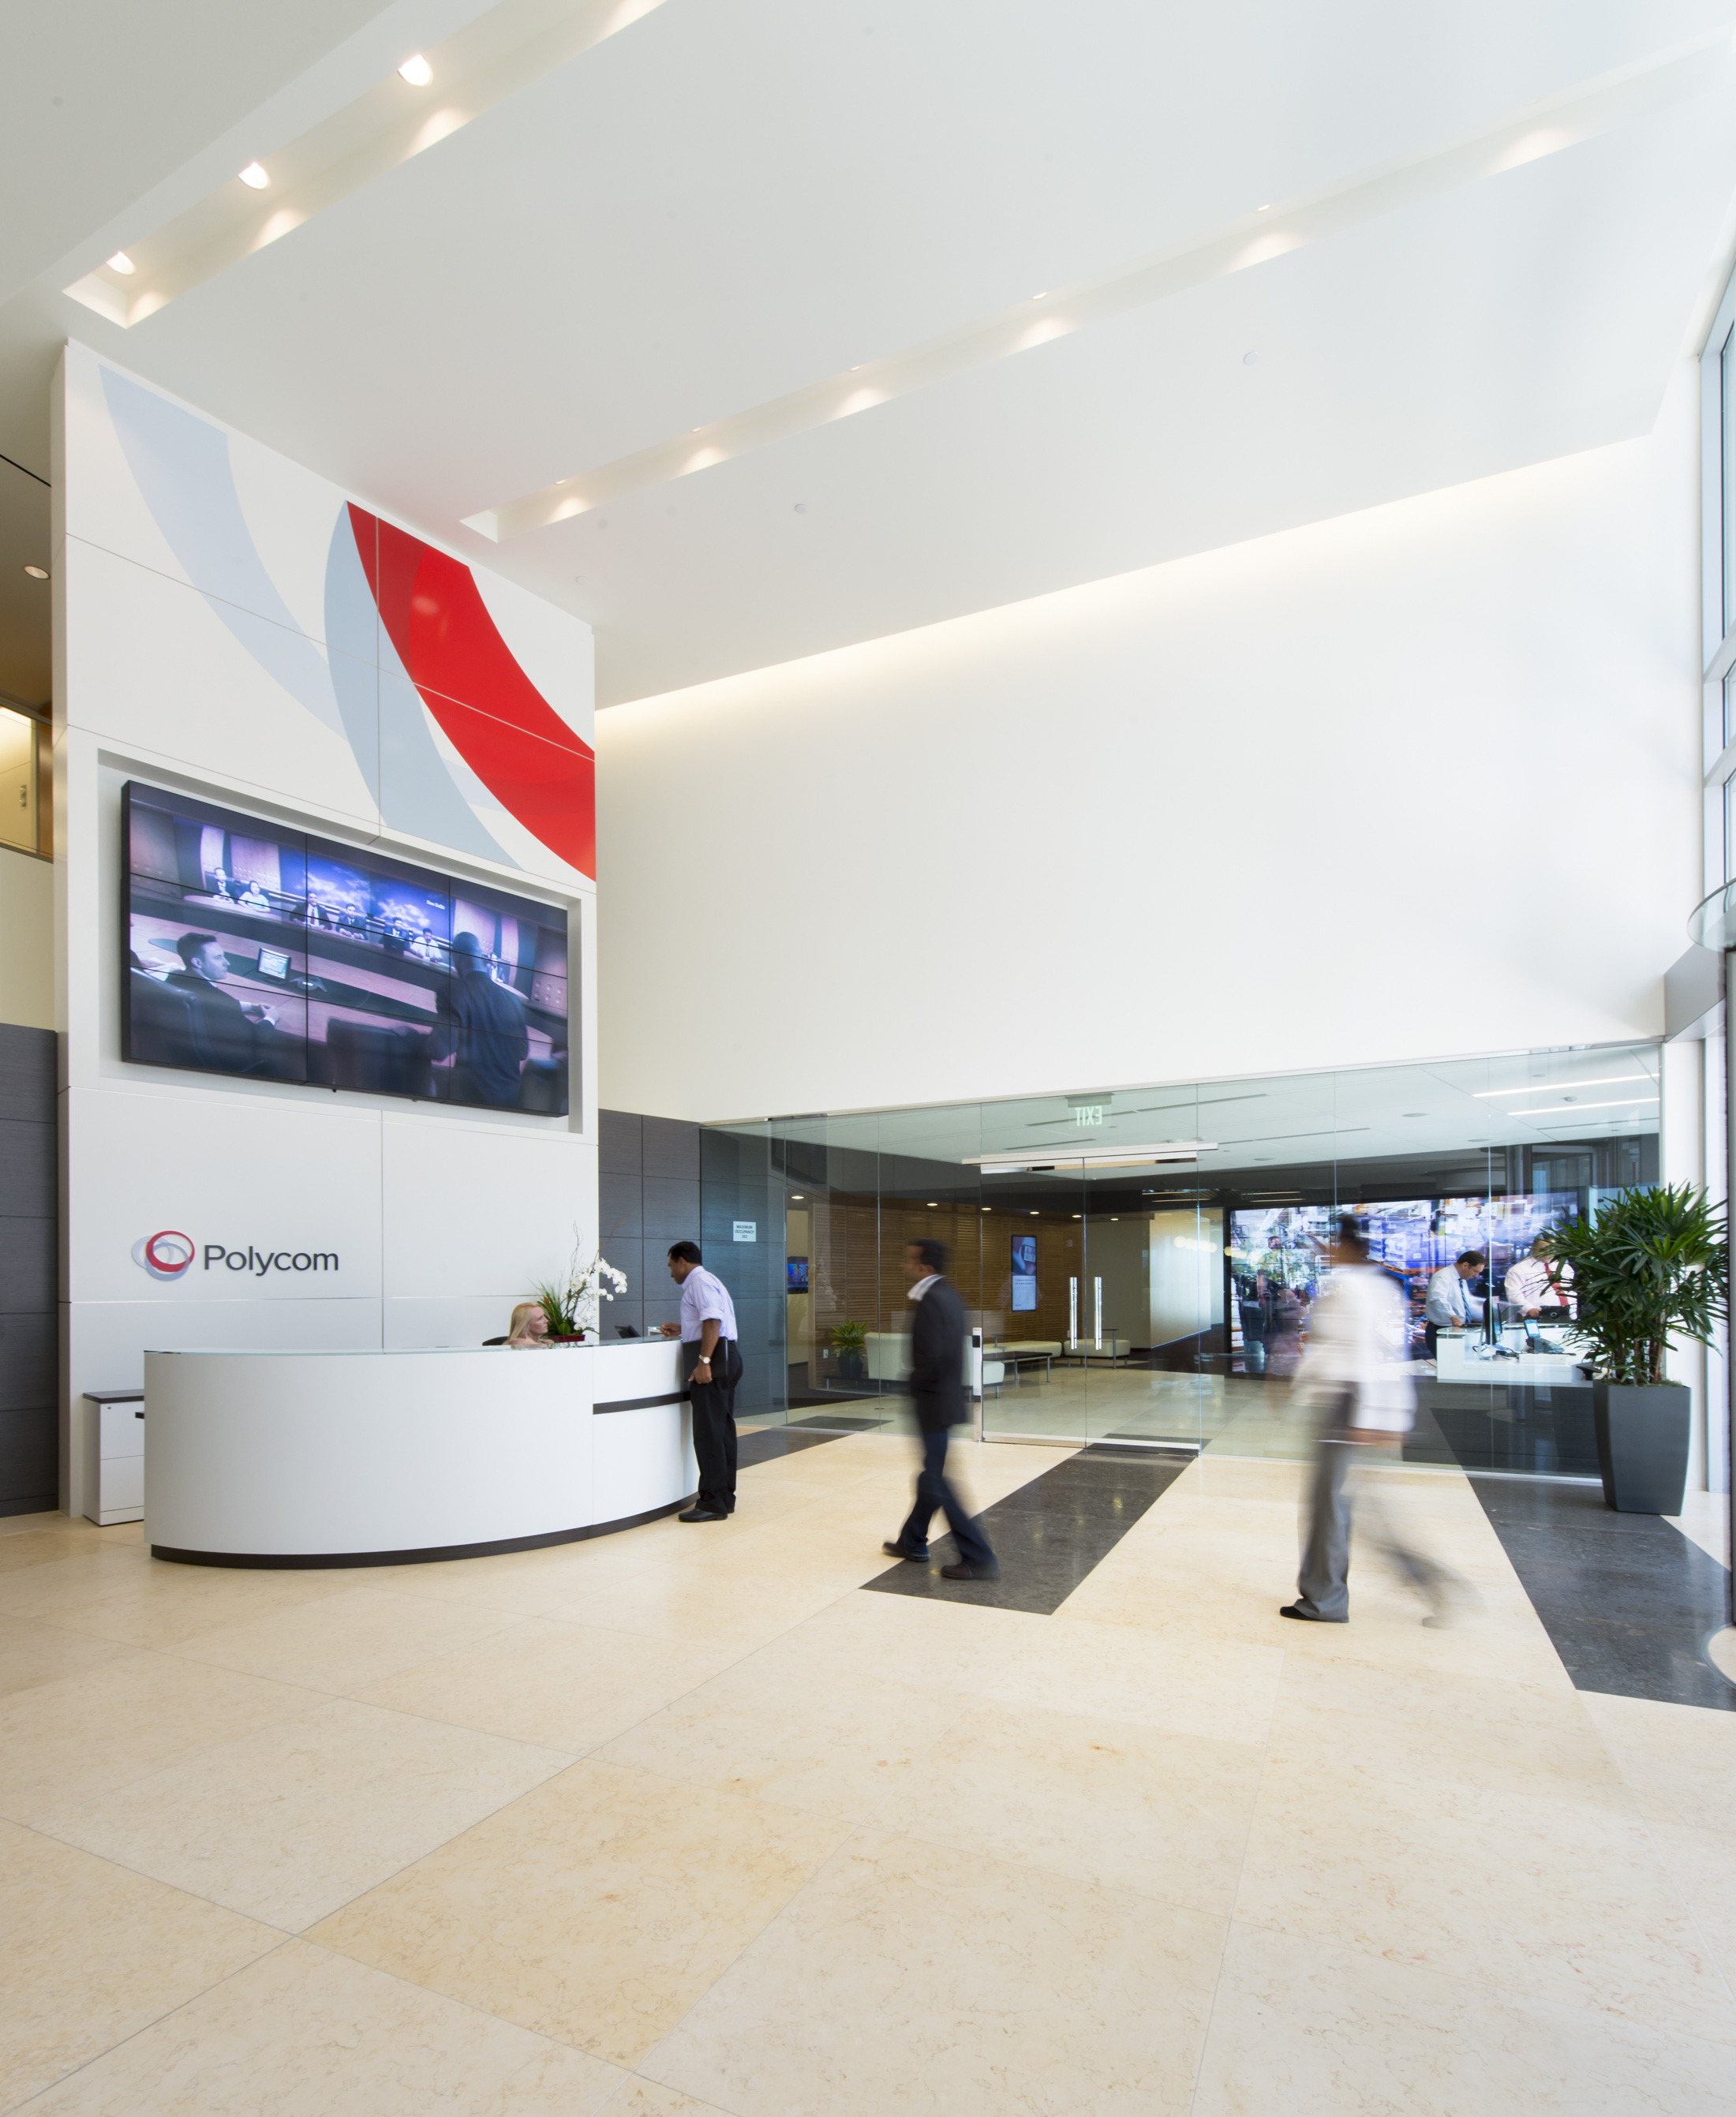 Image of Polycom Corporate Headquarters